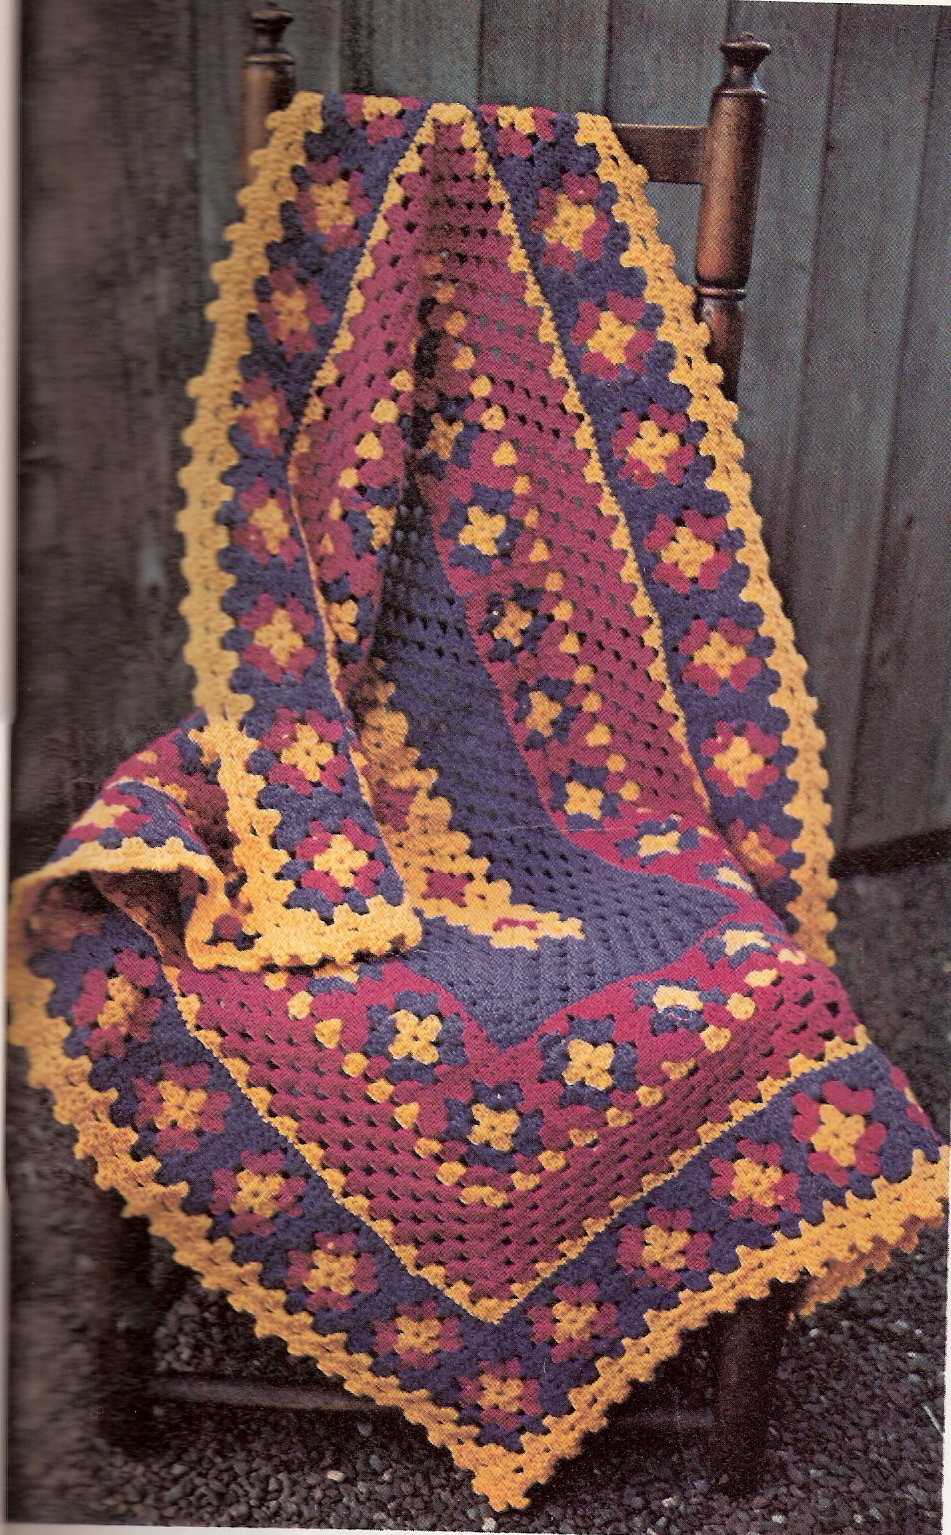 Crochet Patterns For Afghan : patternscentral